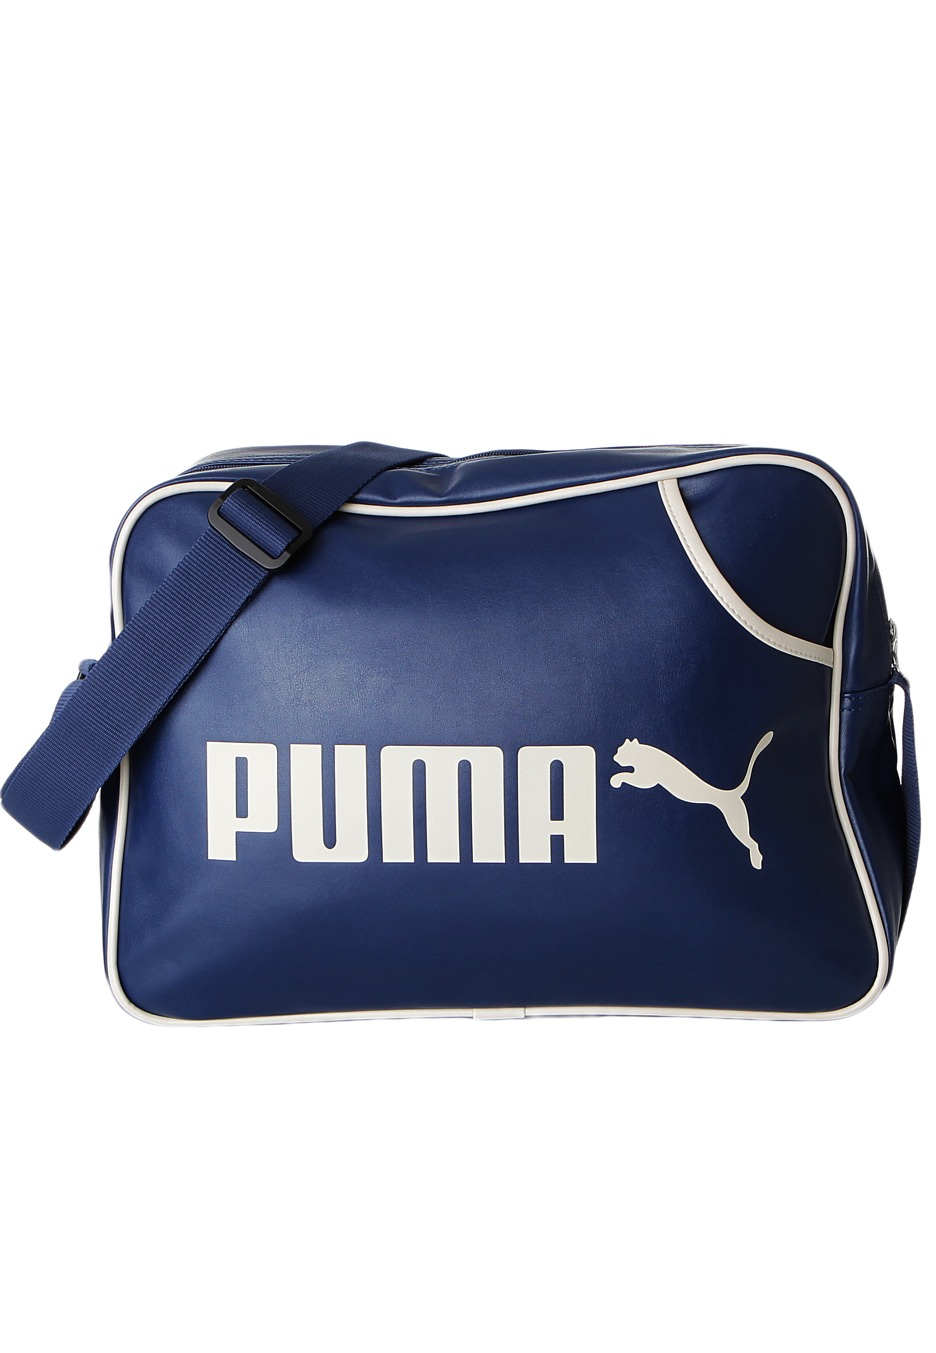 Puma - Campus Reporter Medieval Blue Birch - Bag - Streetwear Shop -  Impericon.com Worldwide 3b41da2c2d52e